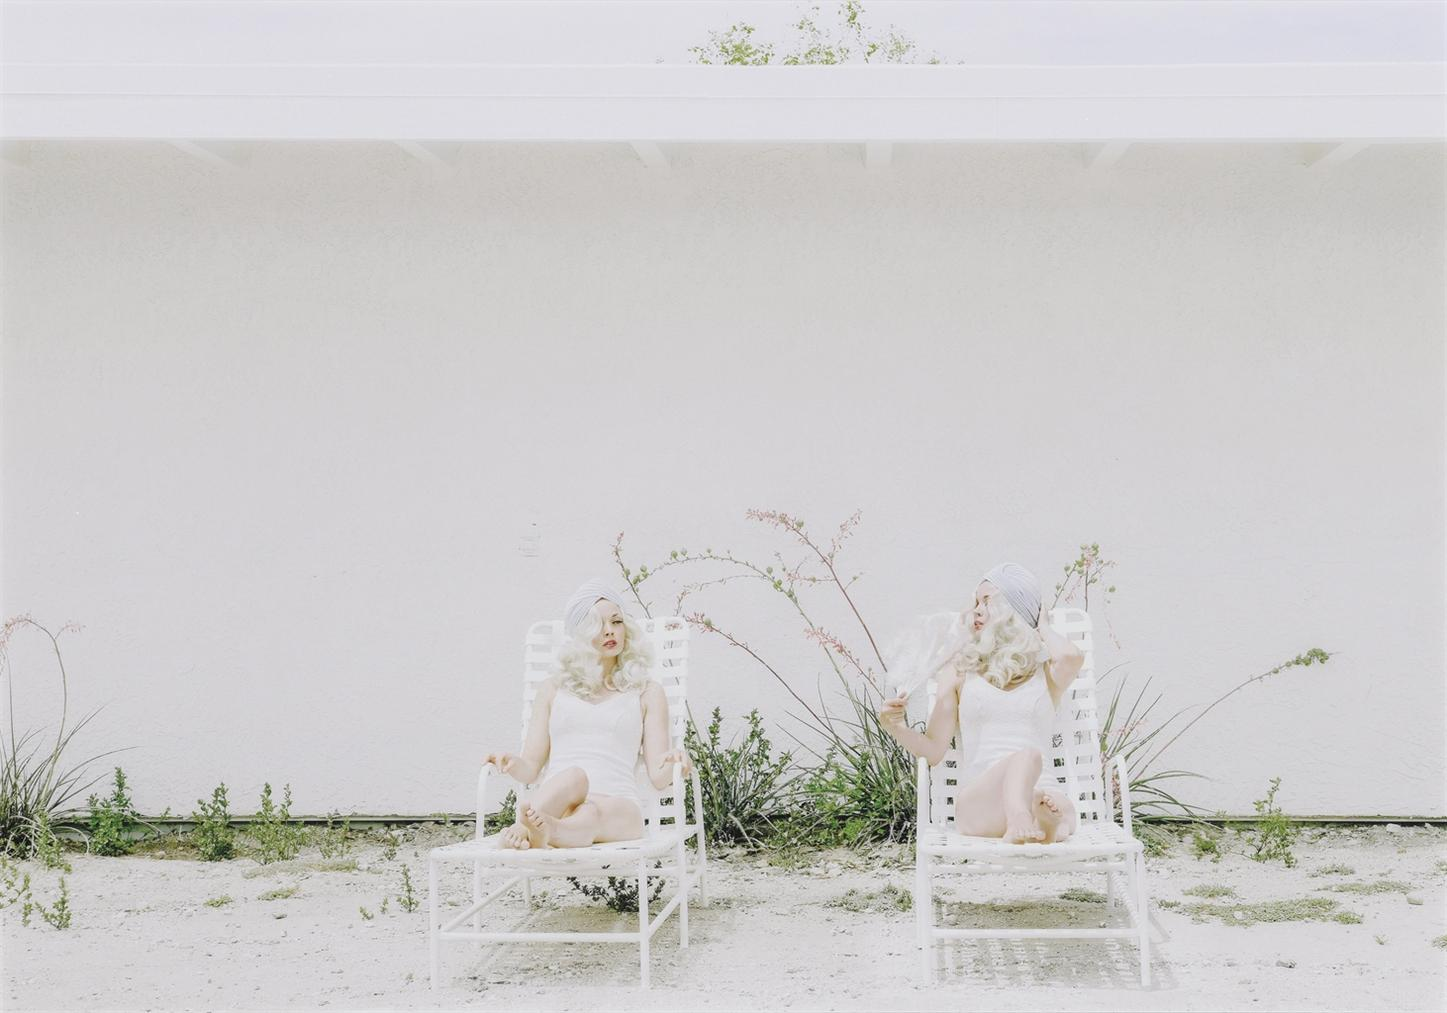 Anja Niemi - The Backyard, 2014-2014